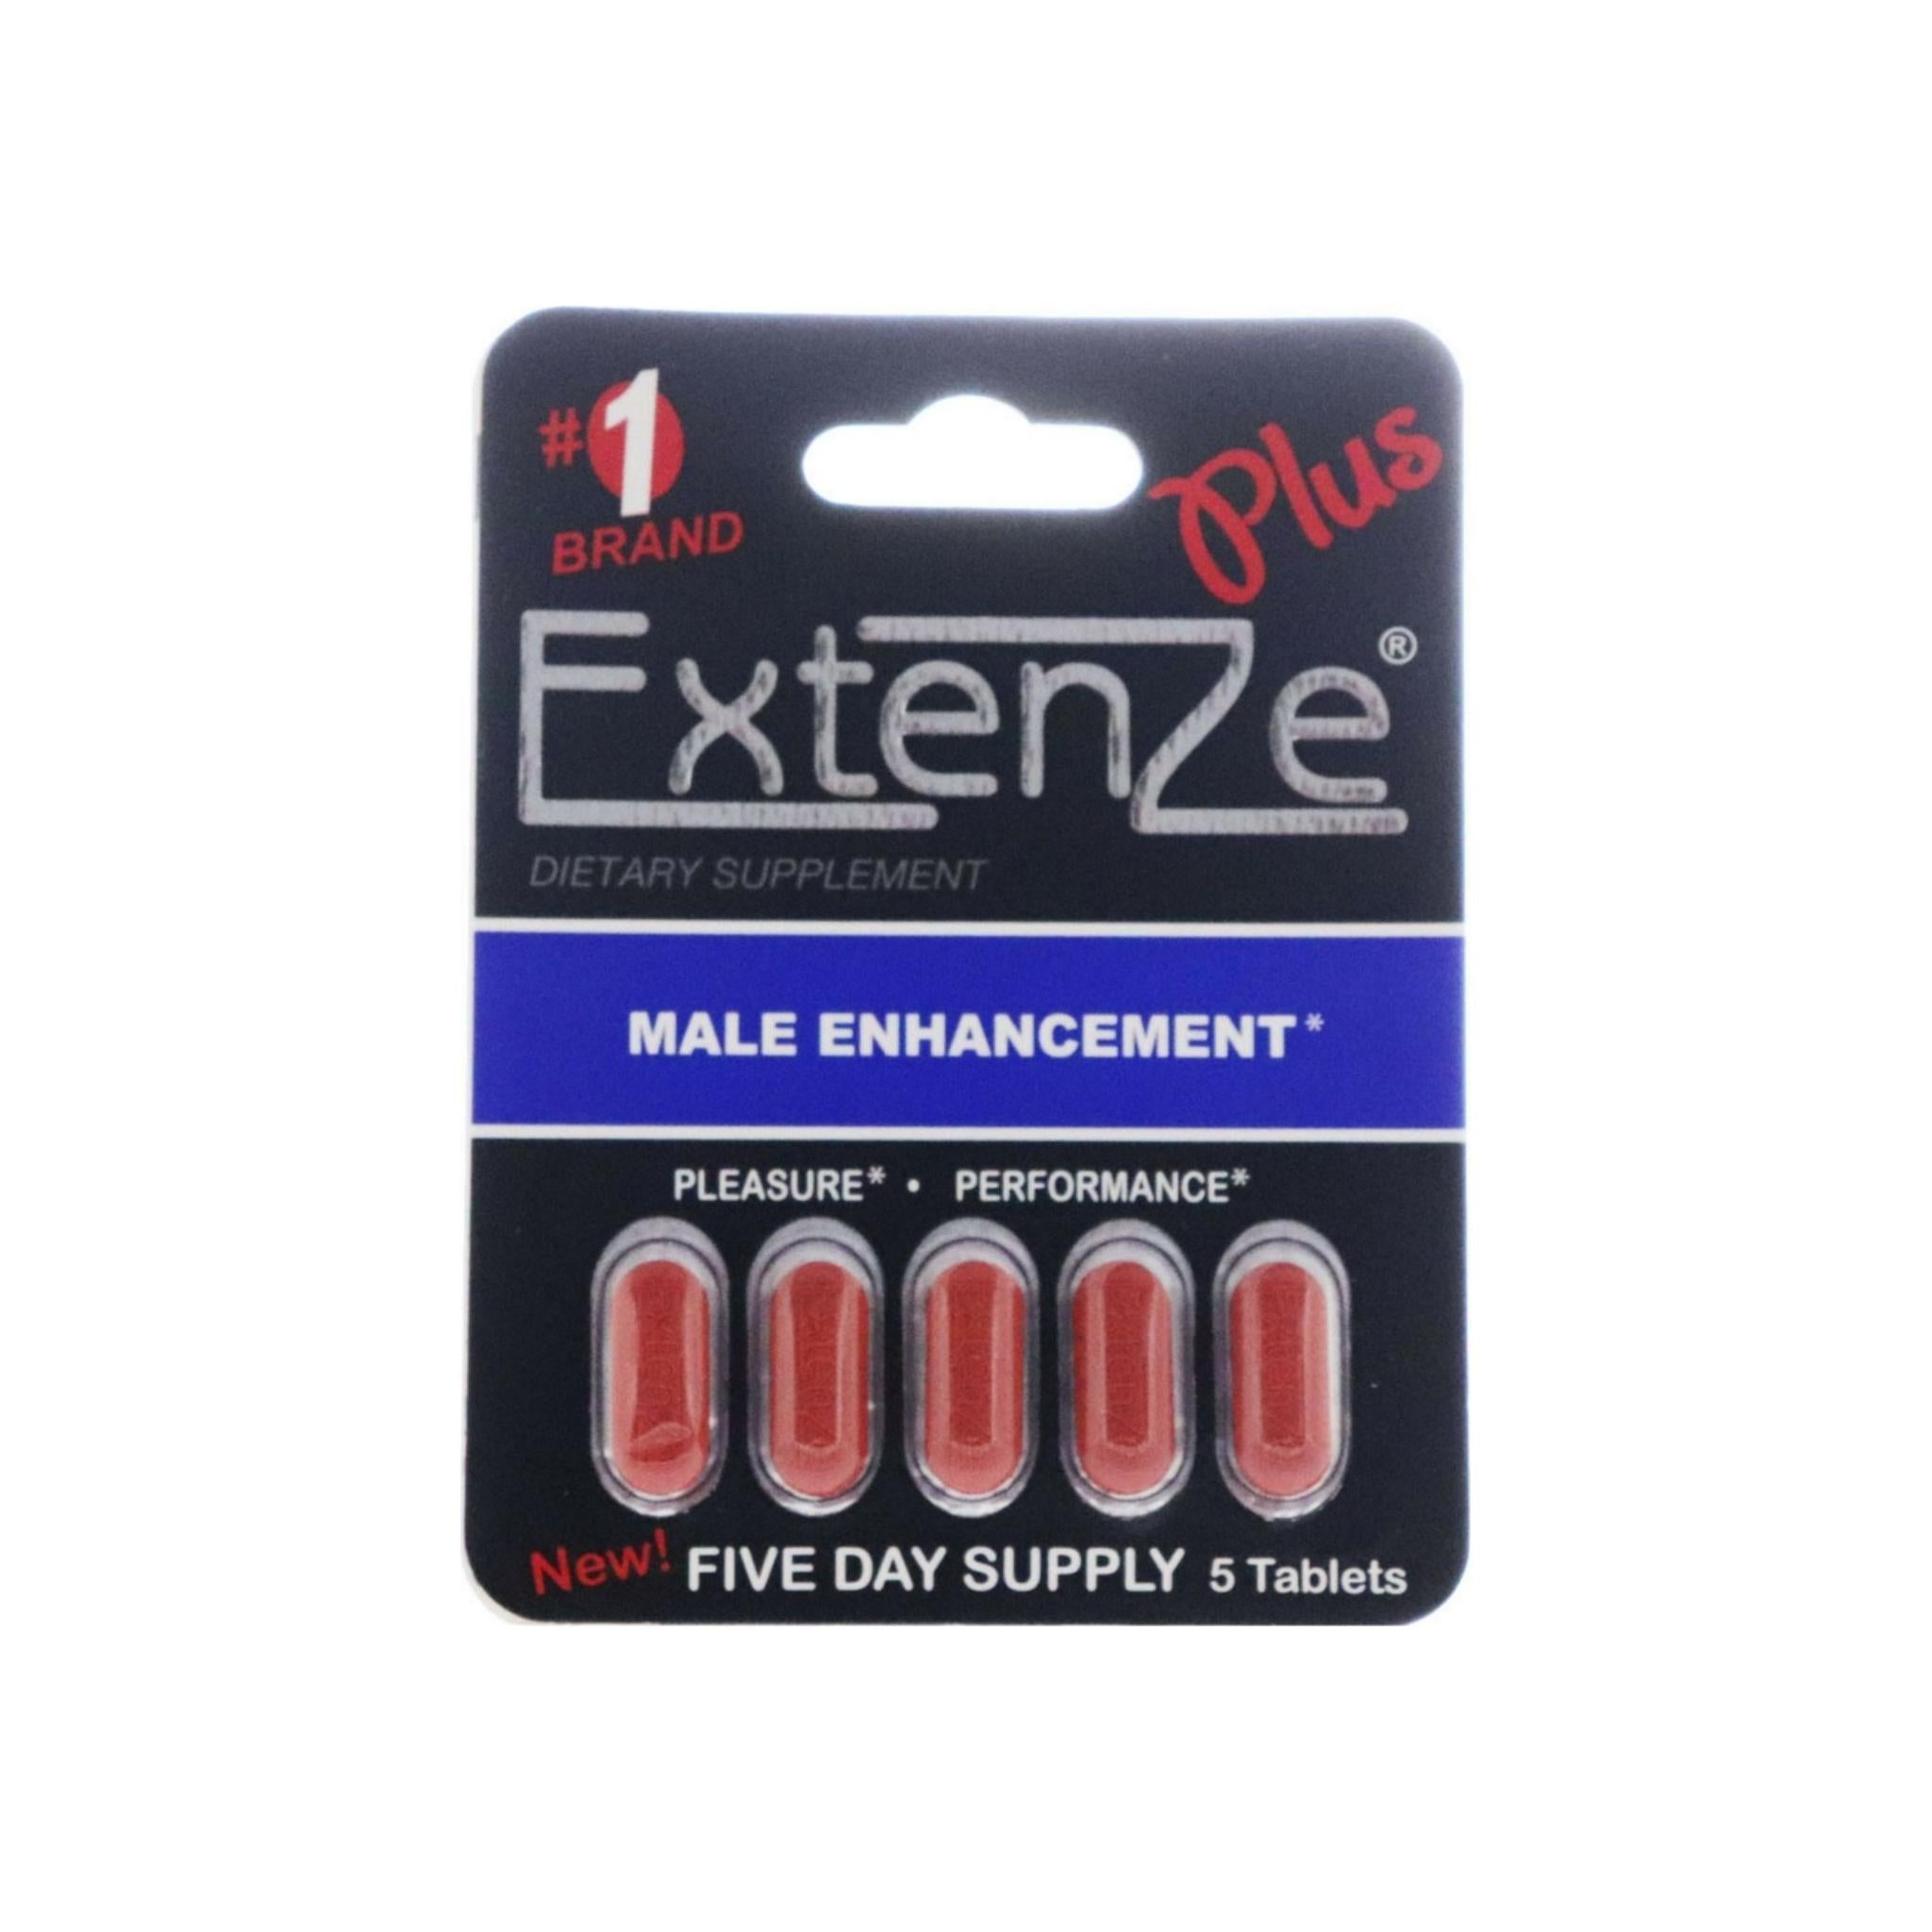 Does Extenze Get You Hard Instantly